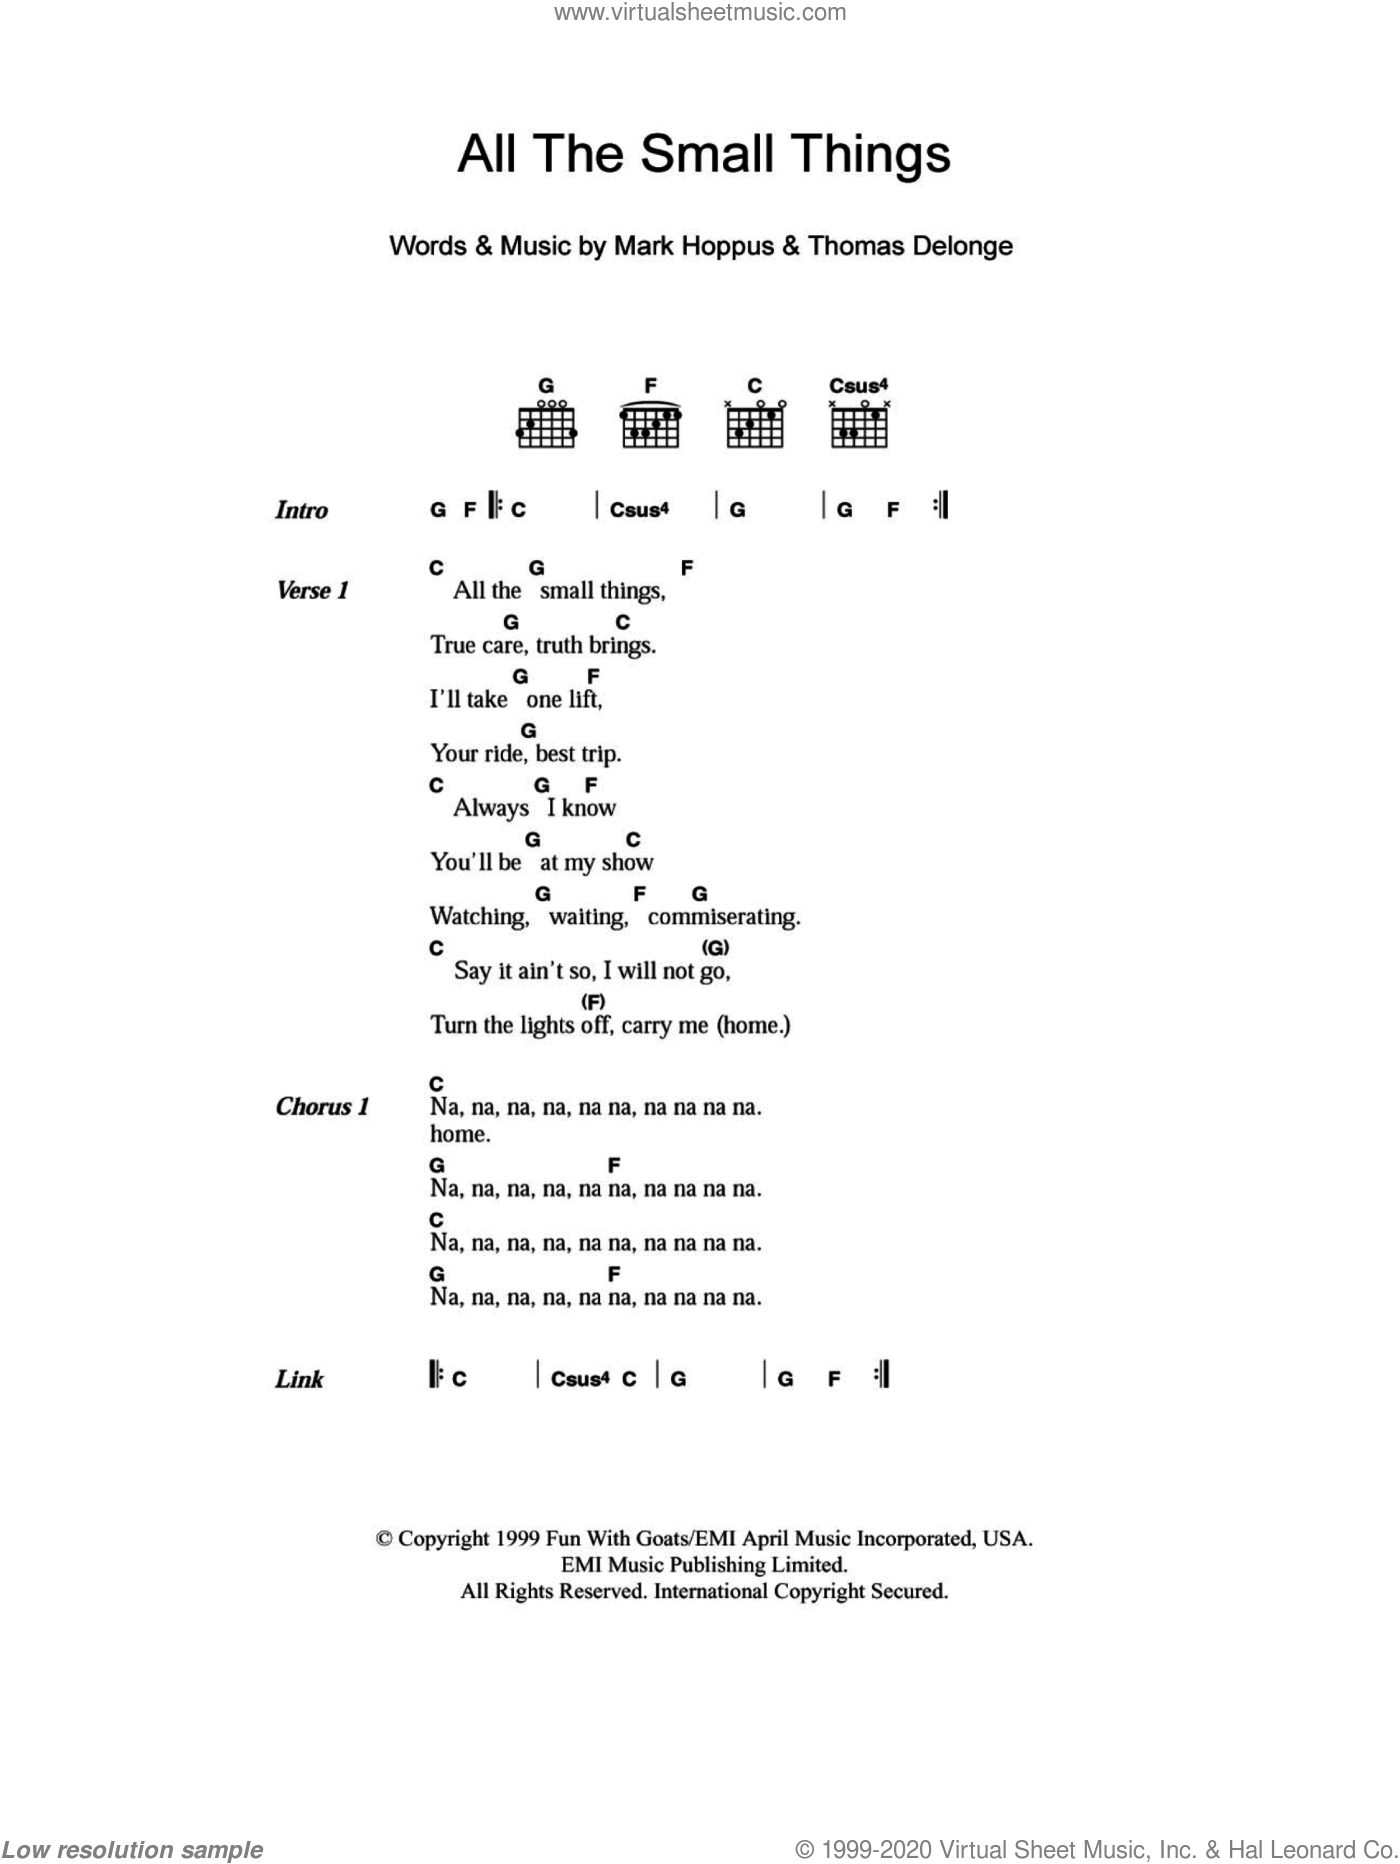 All The Small Things sheet music for guitar (chords, lyrics, melody) by Tom DeLonge